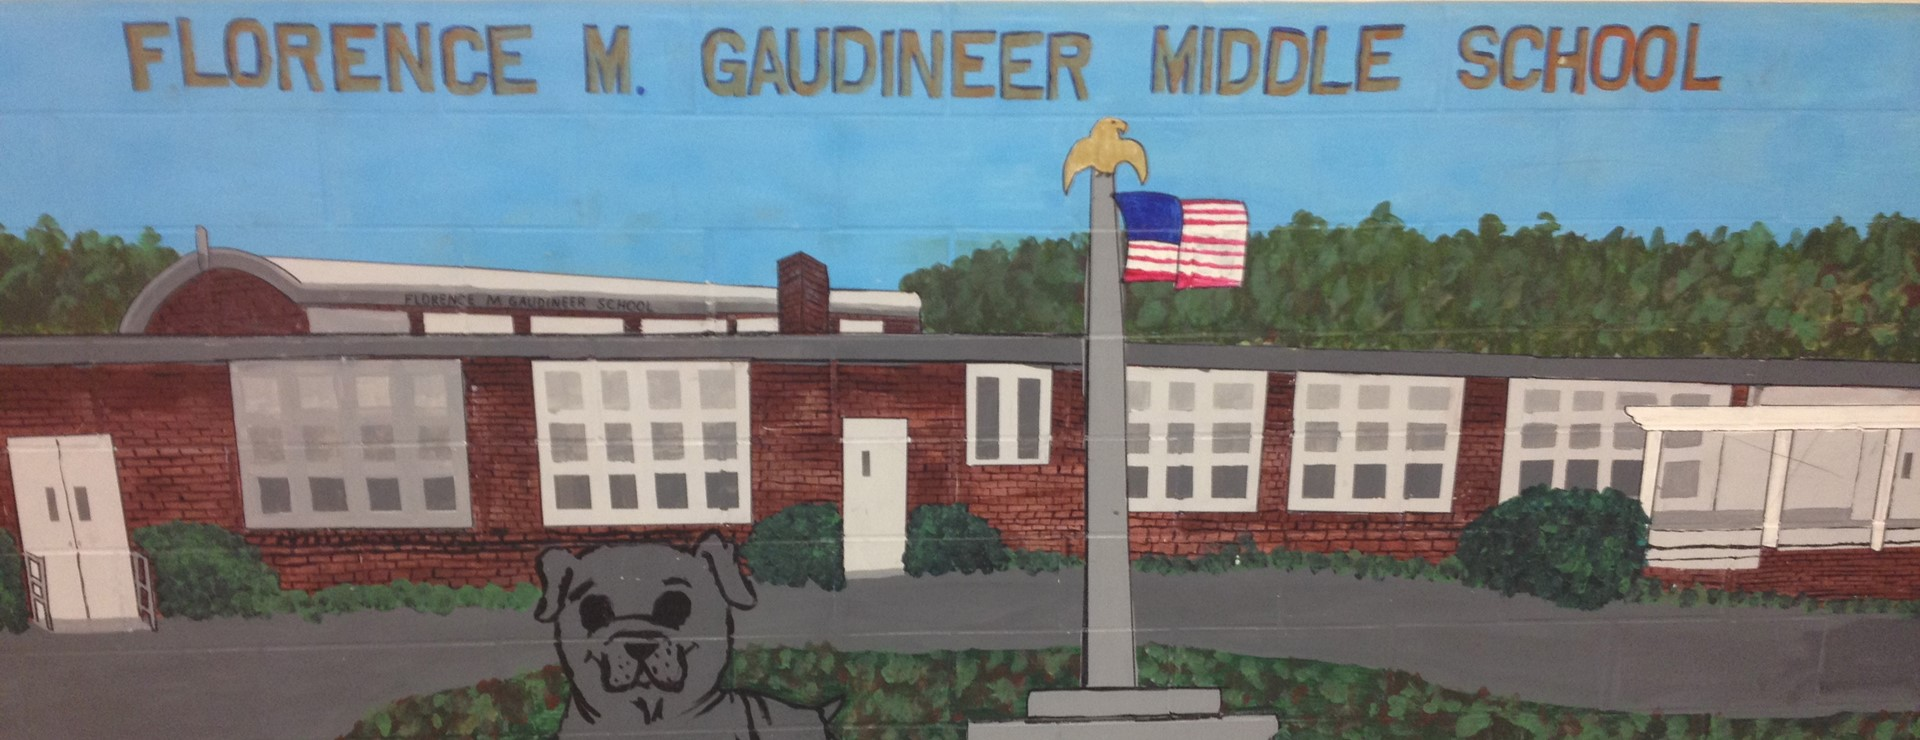 home florence m gaudineer middle school